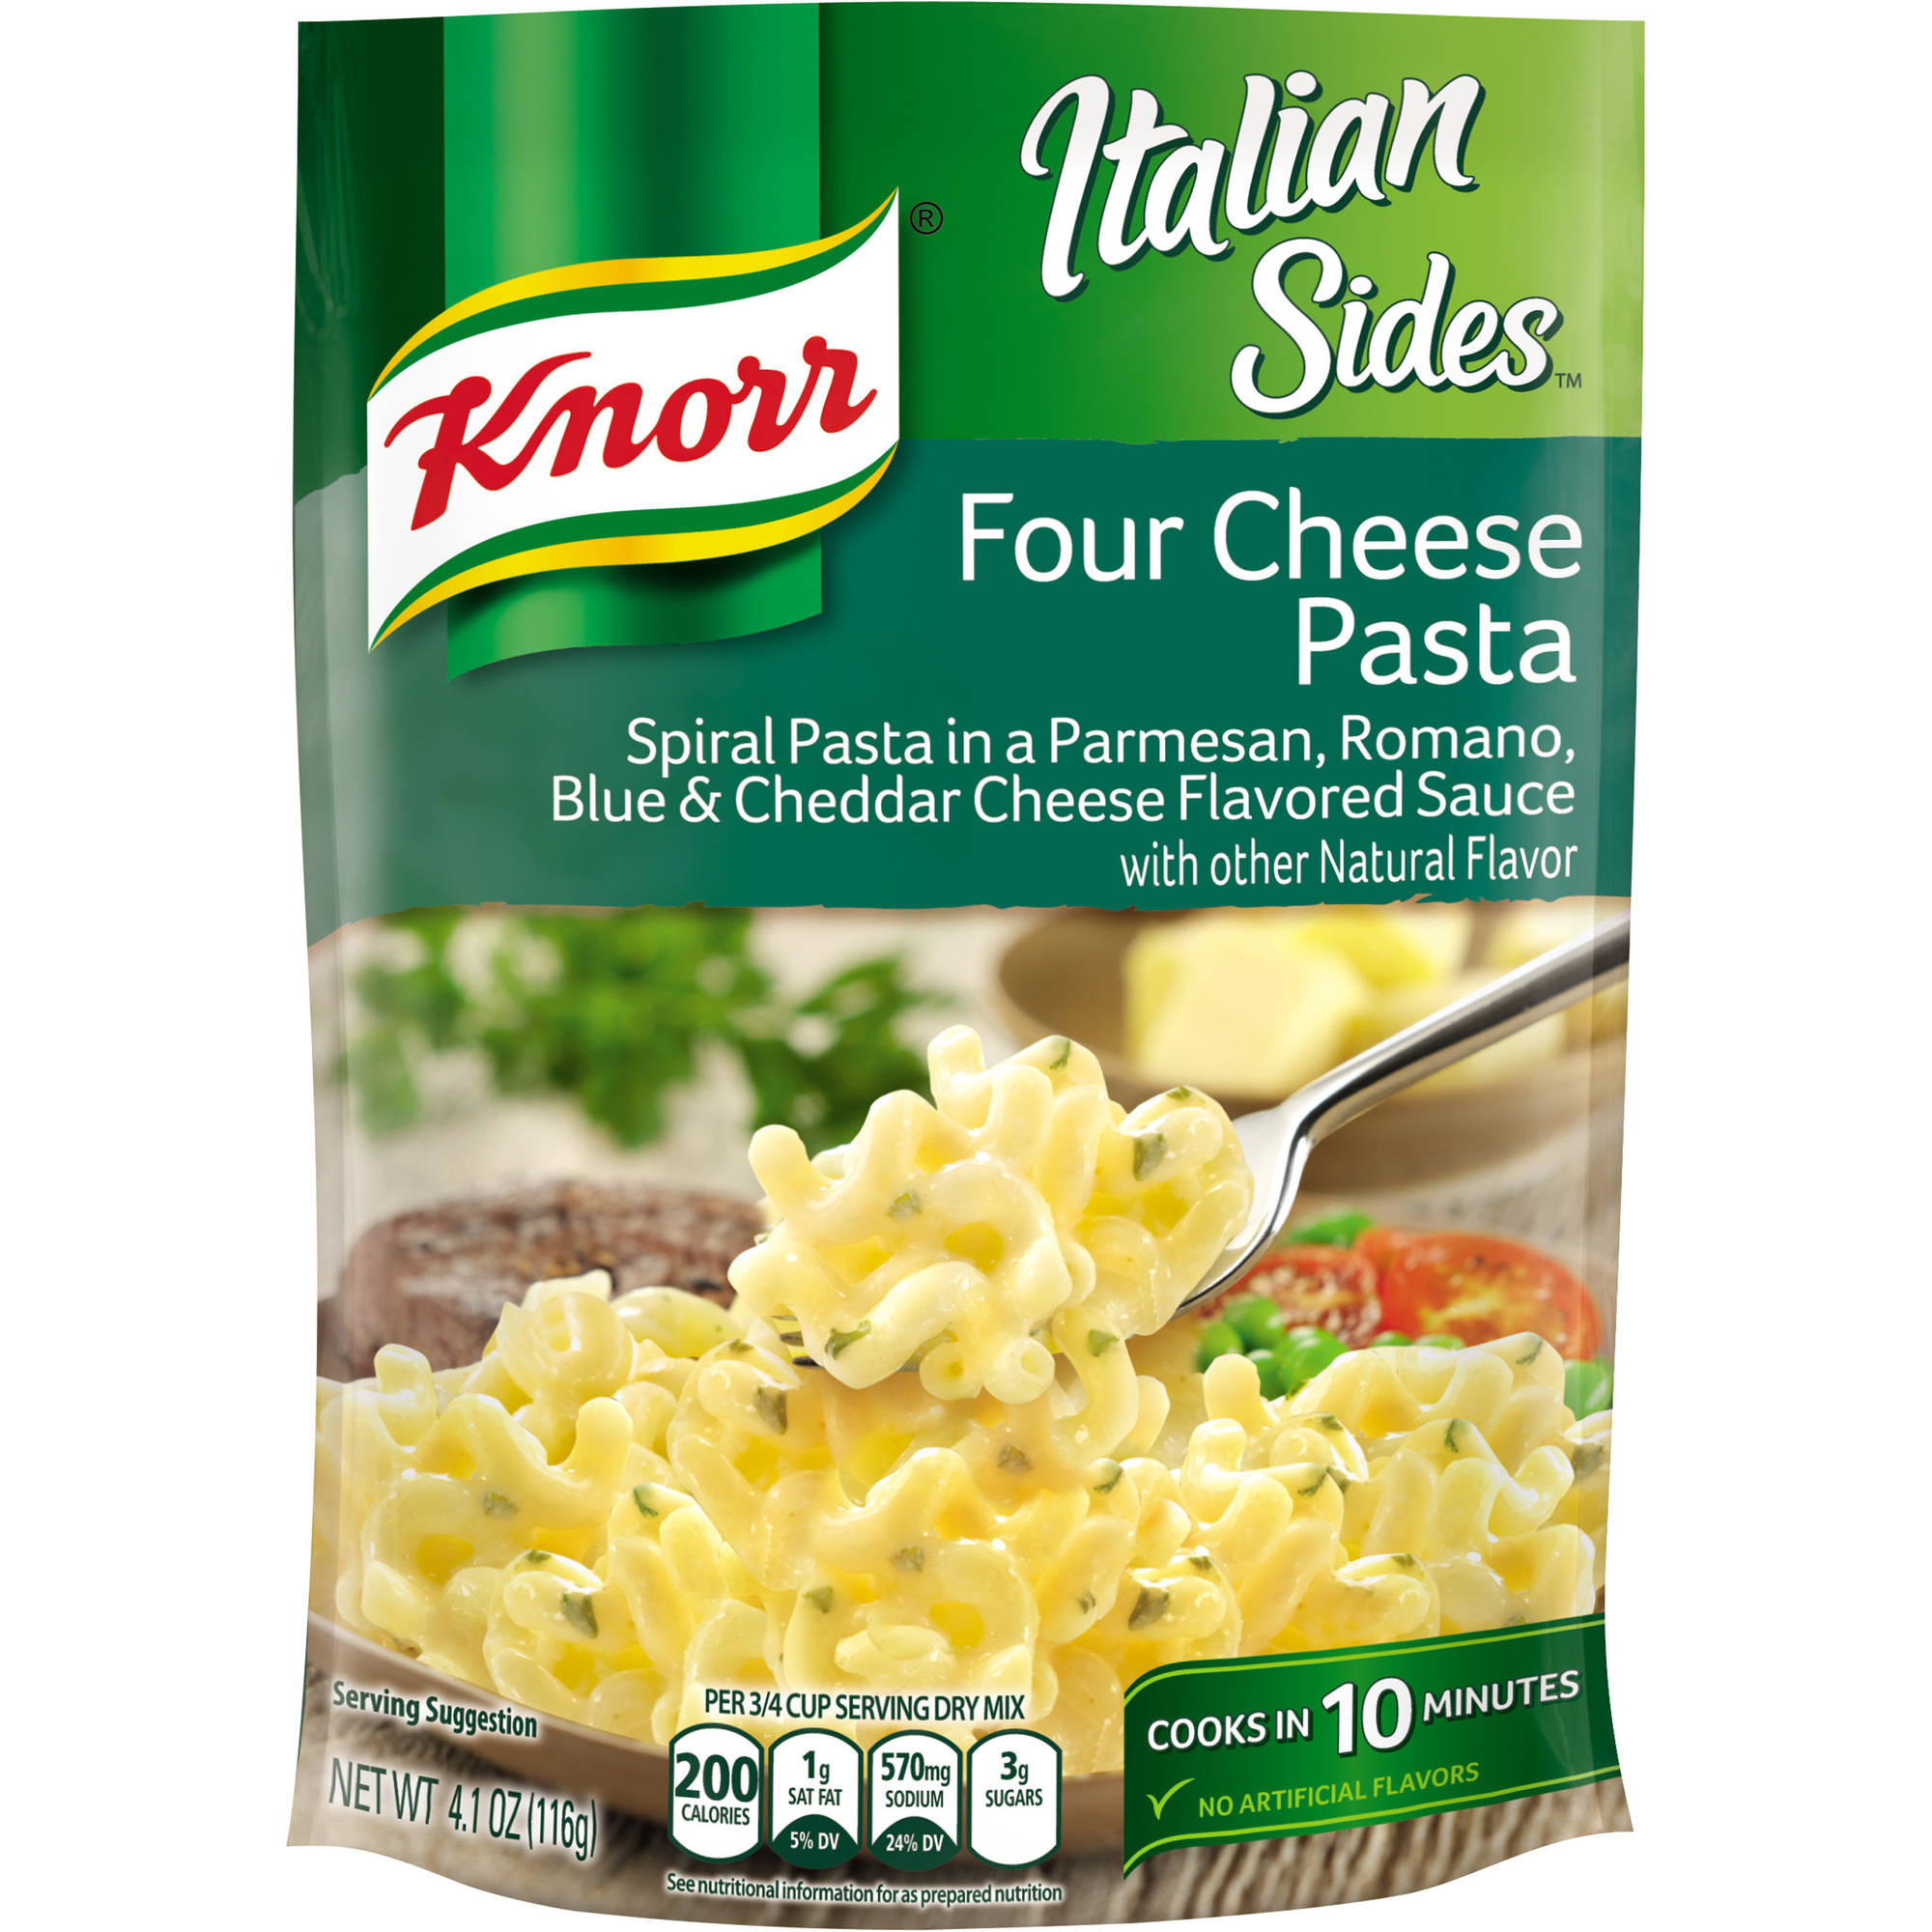 Knorr Italian Sides Pasta Side Dish Four Cheese Pasta, 4.1 oz